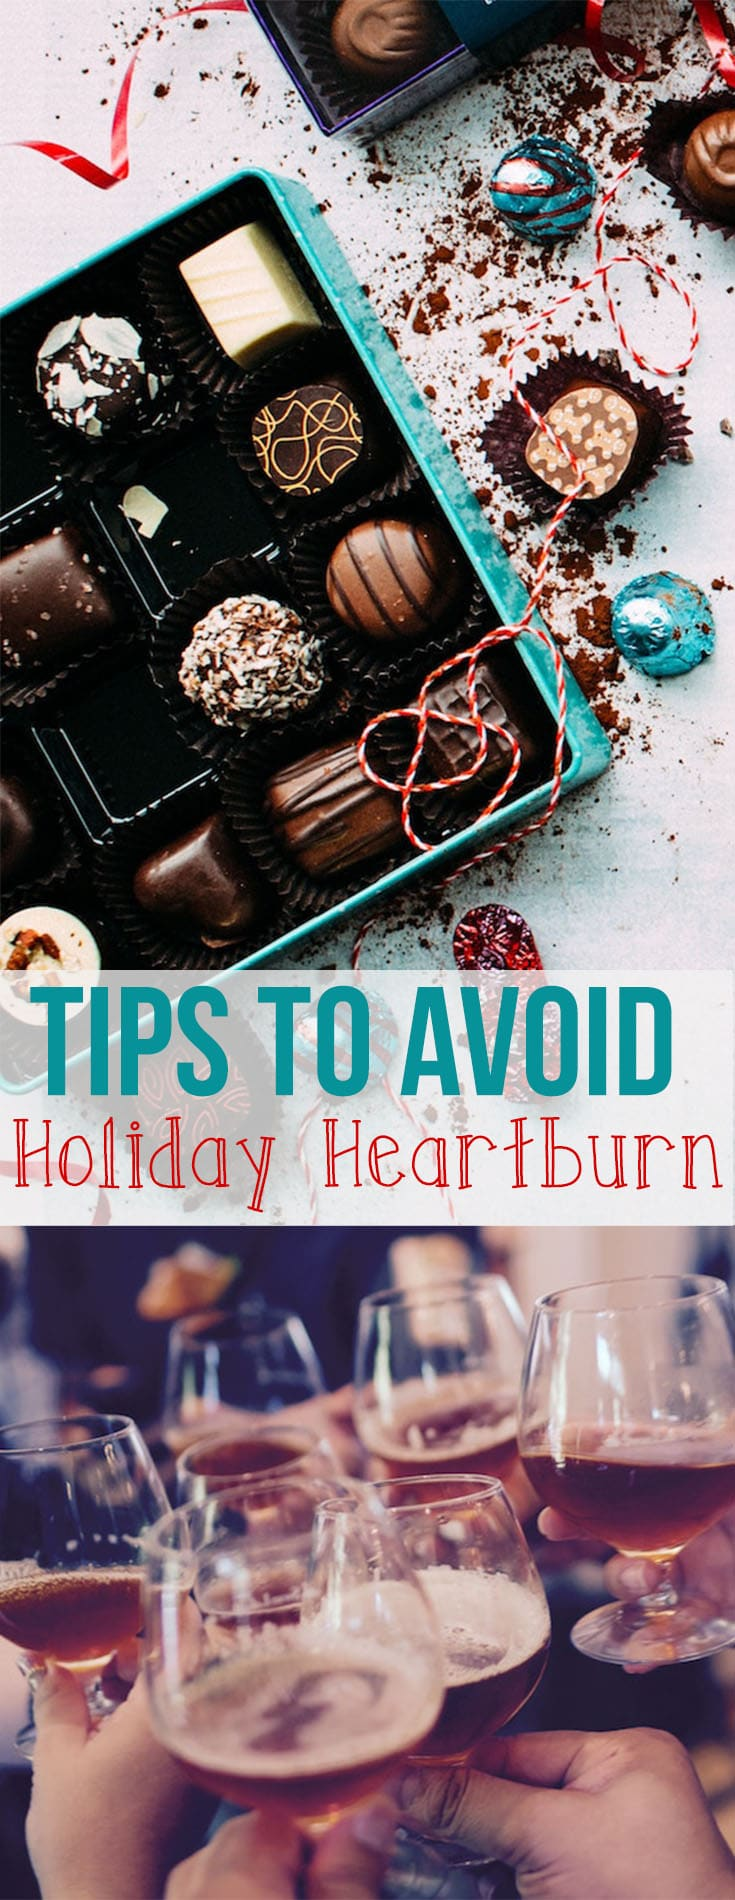 I'm sharing my best tips to help you survive the Christmas meal without holiday heartburn and indigestion.